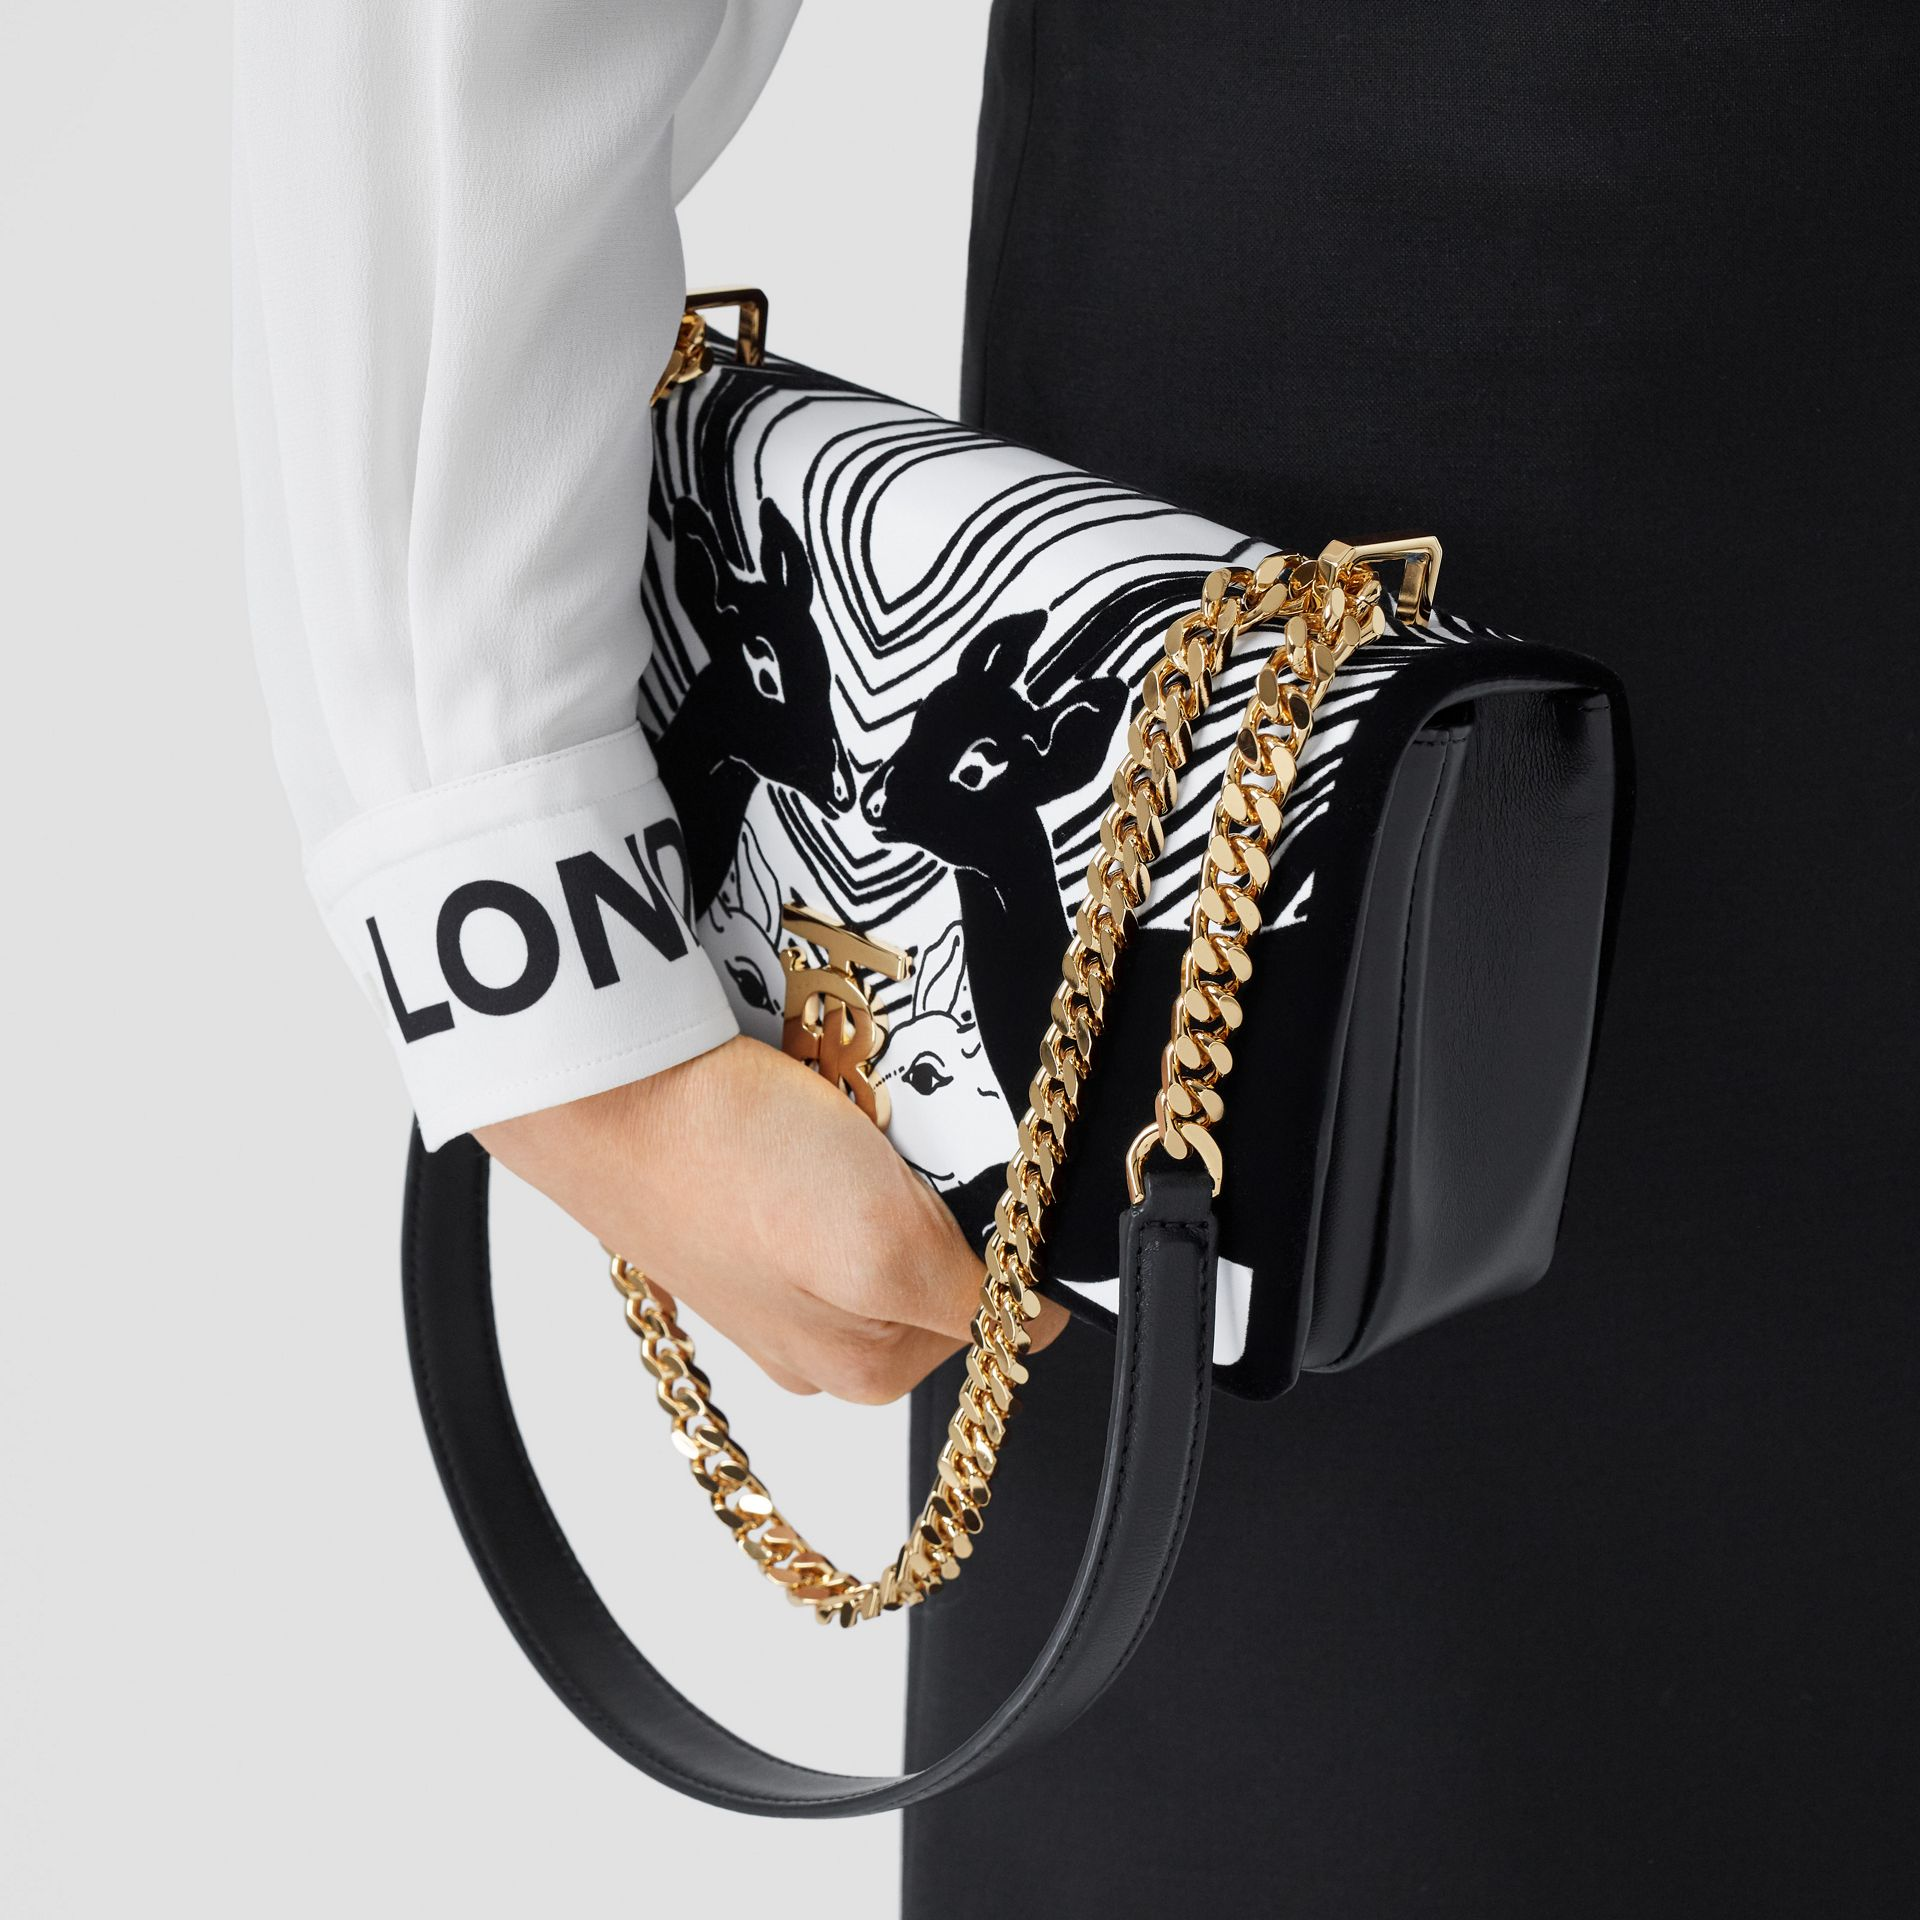 Small Deer Flock Leather Lola Bag in Black/white - Women | Burberry Hong Kong S.A.R. - gallery image 8